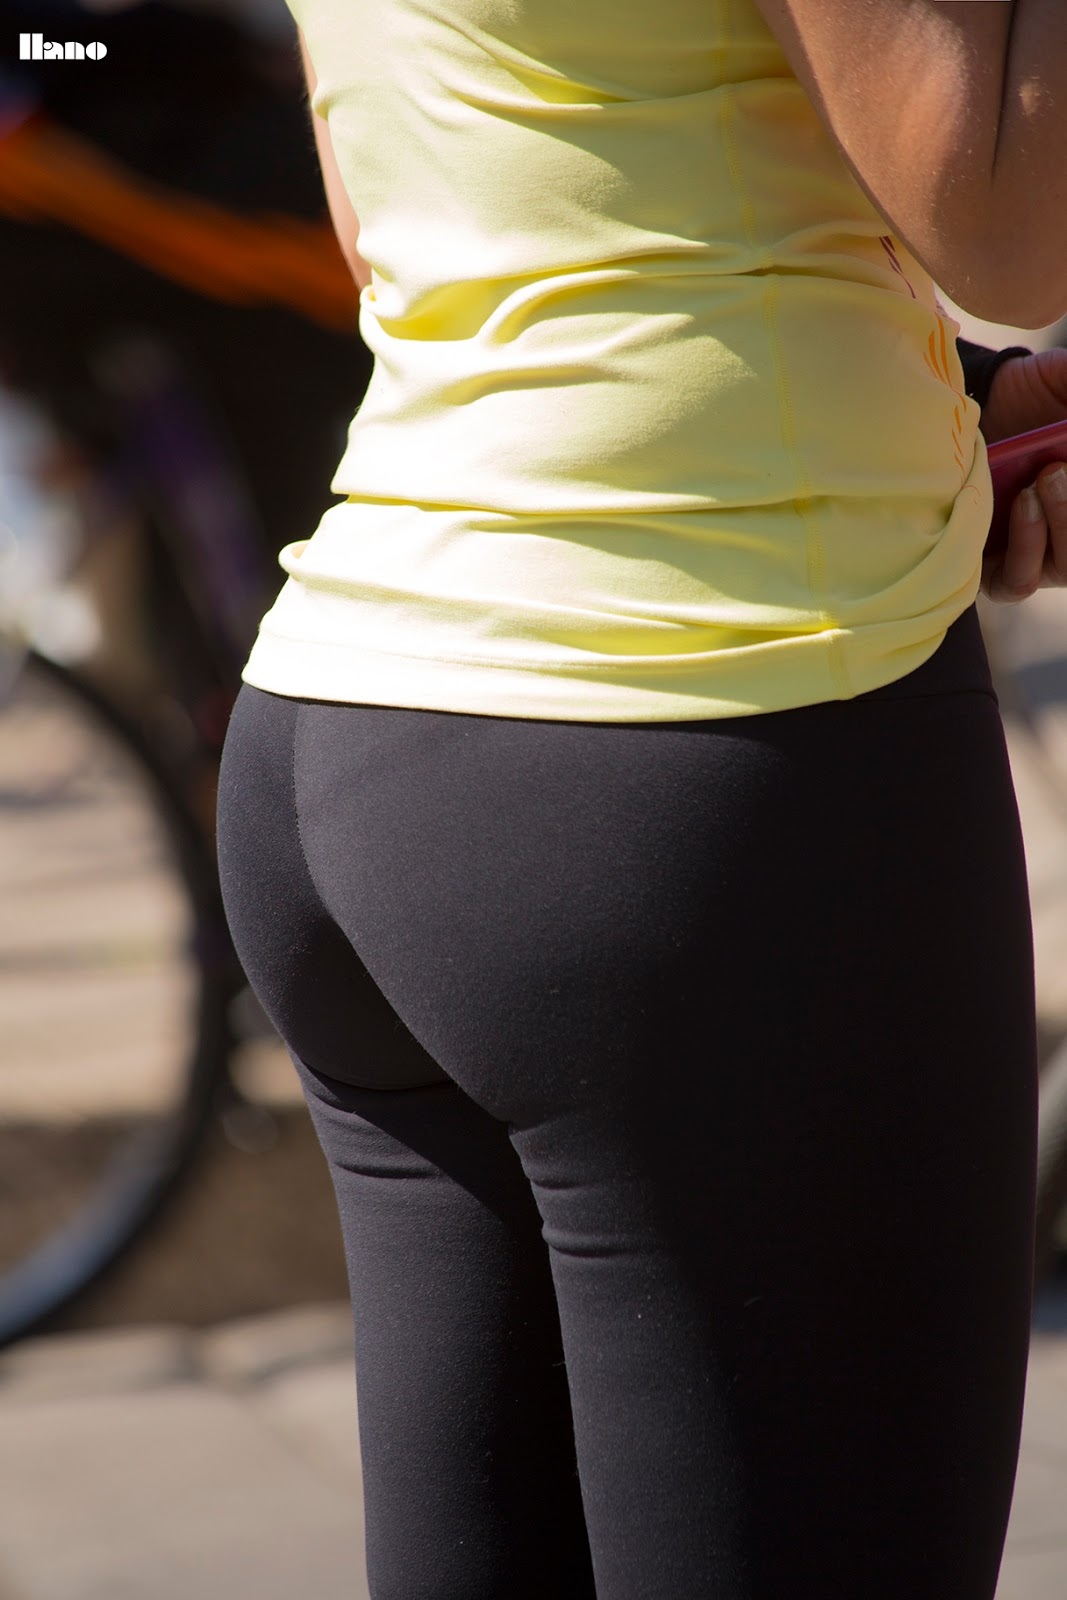 Nicest Ass In Spandex-3584